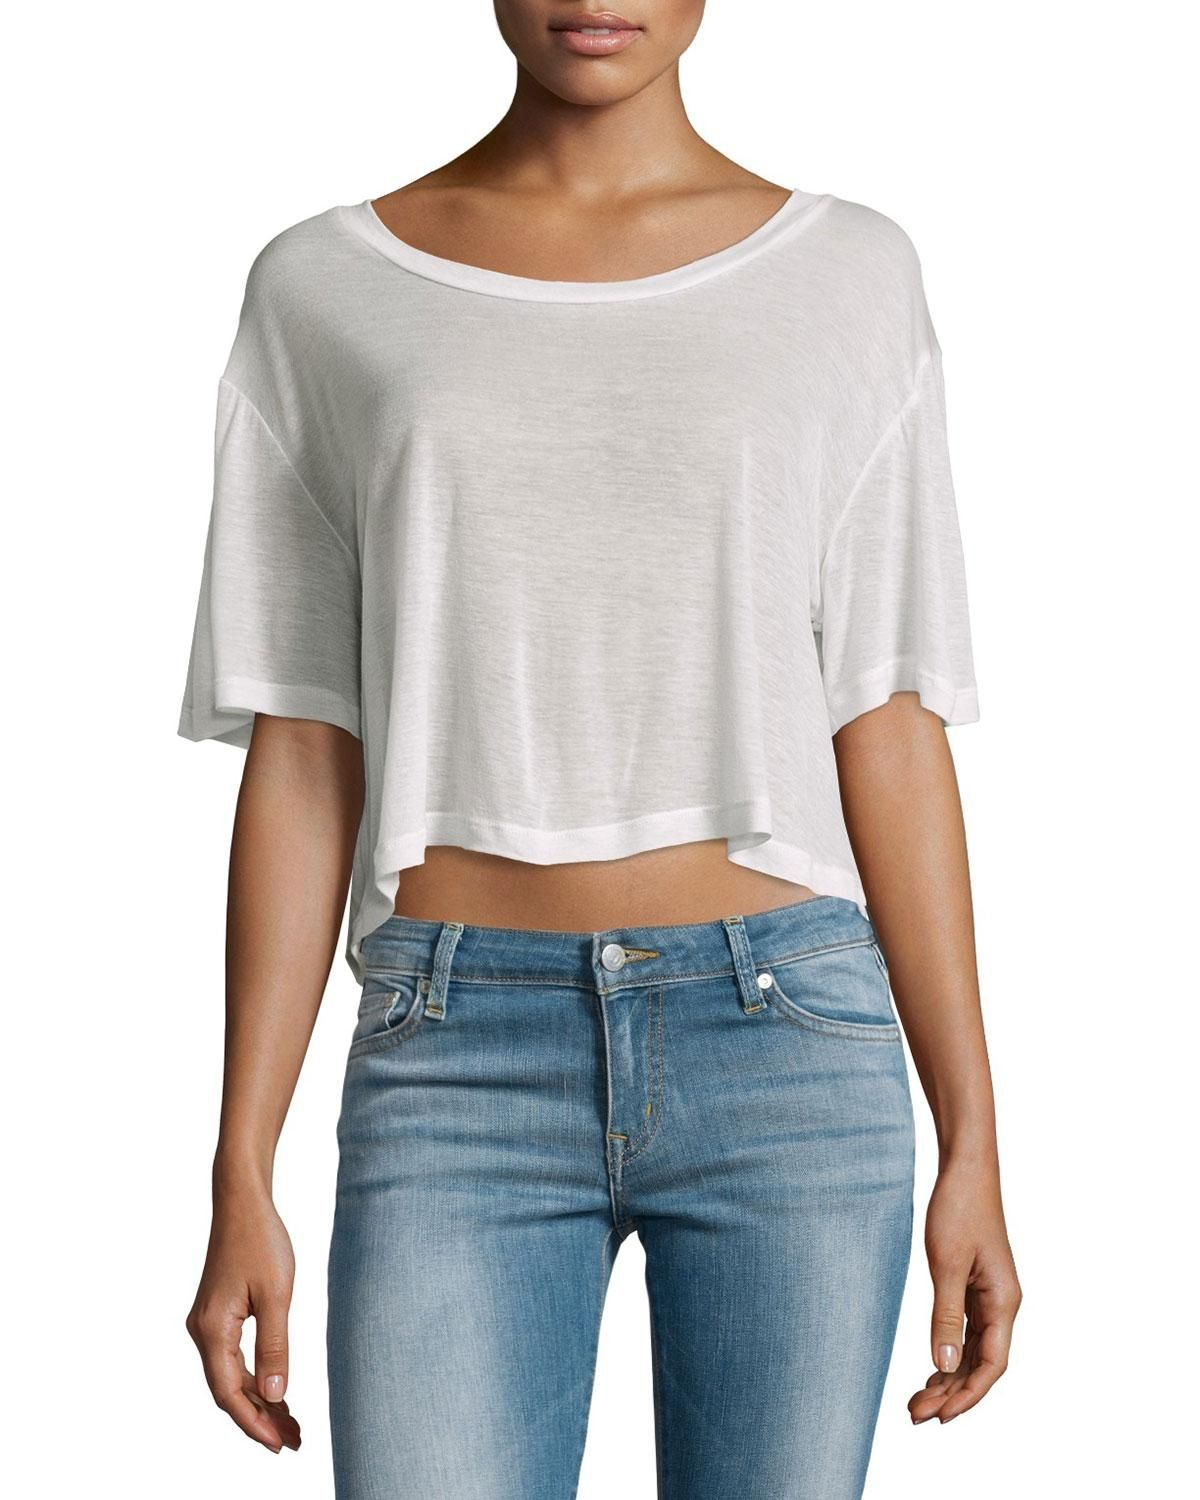 F.T.B by Fade to Blue Short-Sleeve Cropped Tee, Blush, Women's, Size: LARGE, Blu - http://www.musteredlady.com/f-t-b-by-fade-to-blue-short-sleeve-cropped-tee-blush-womens-size-large-blu/  .. http://goo.gl/G65fUy |  MusteredLady.com